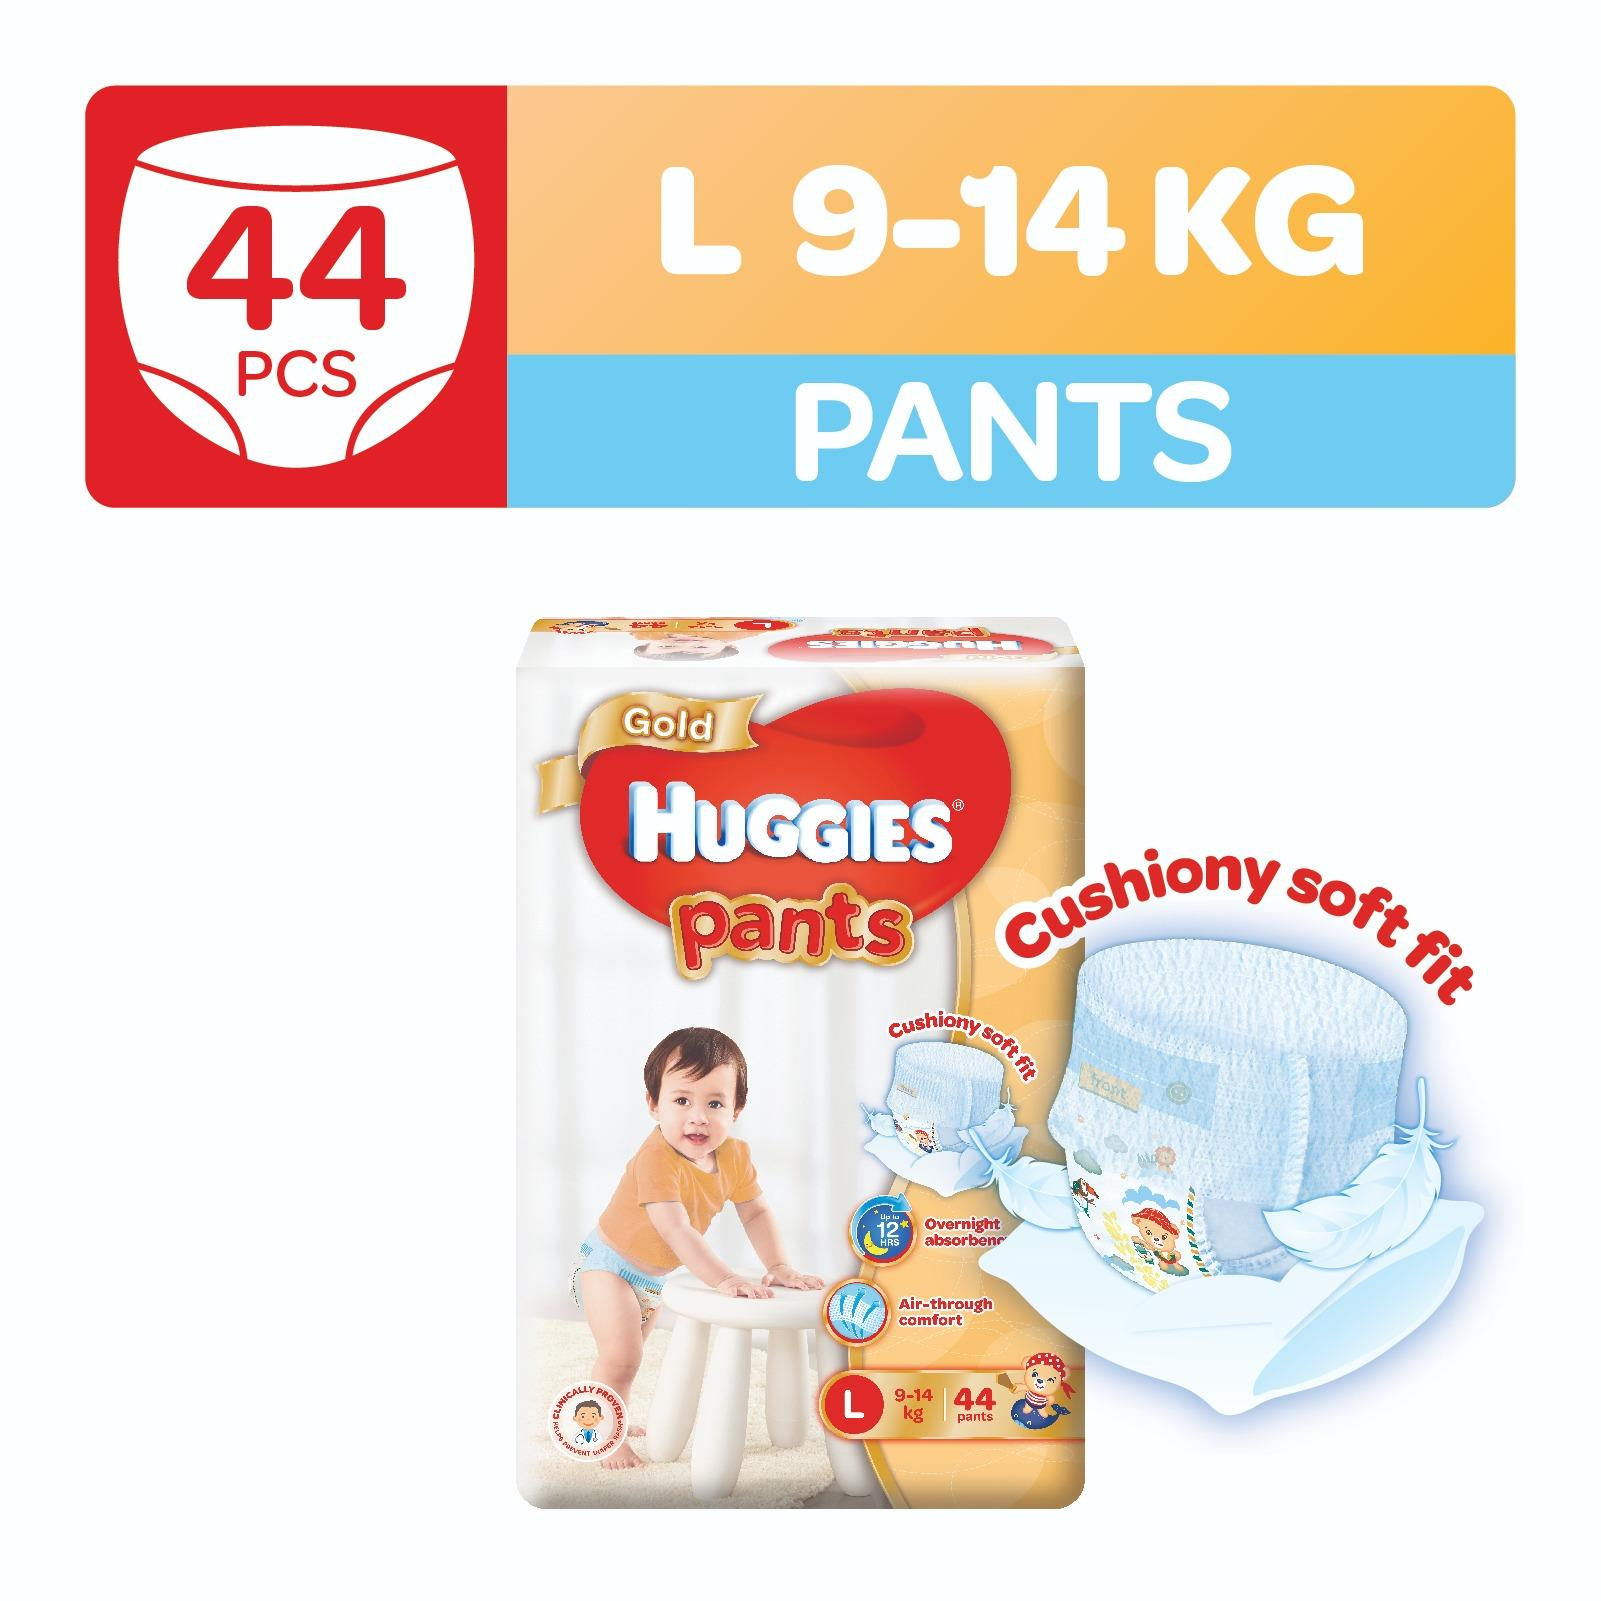 Review Huggies Gold Pullup Pants L 44Pcs On Singapore